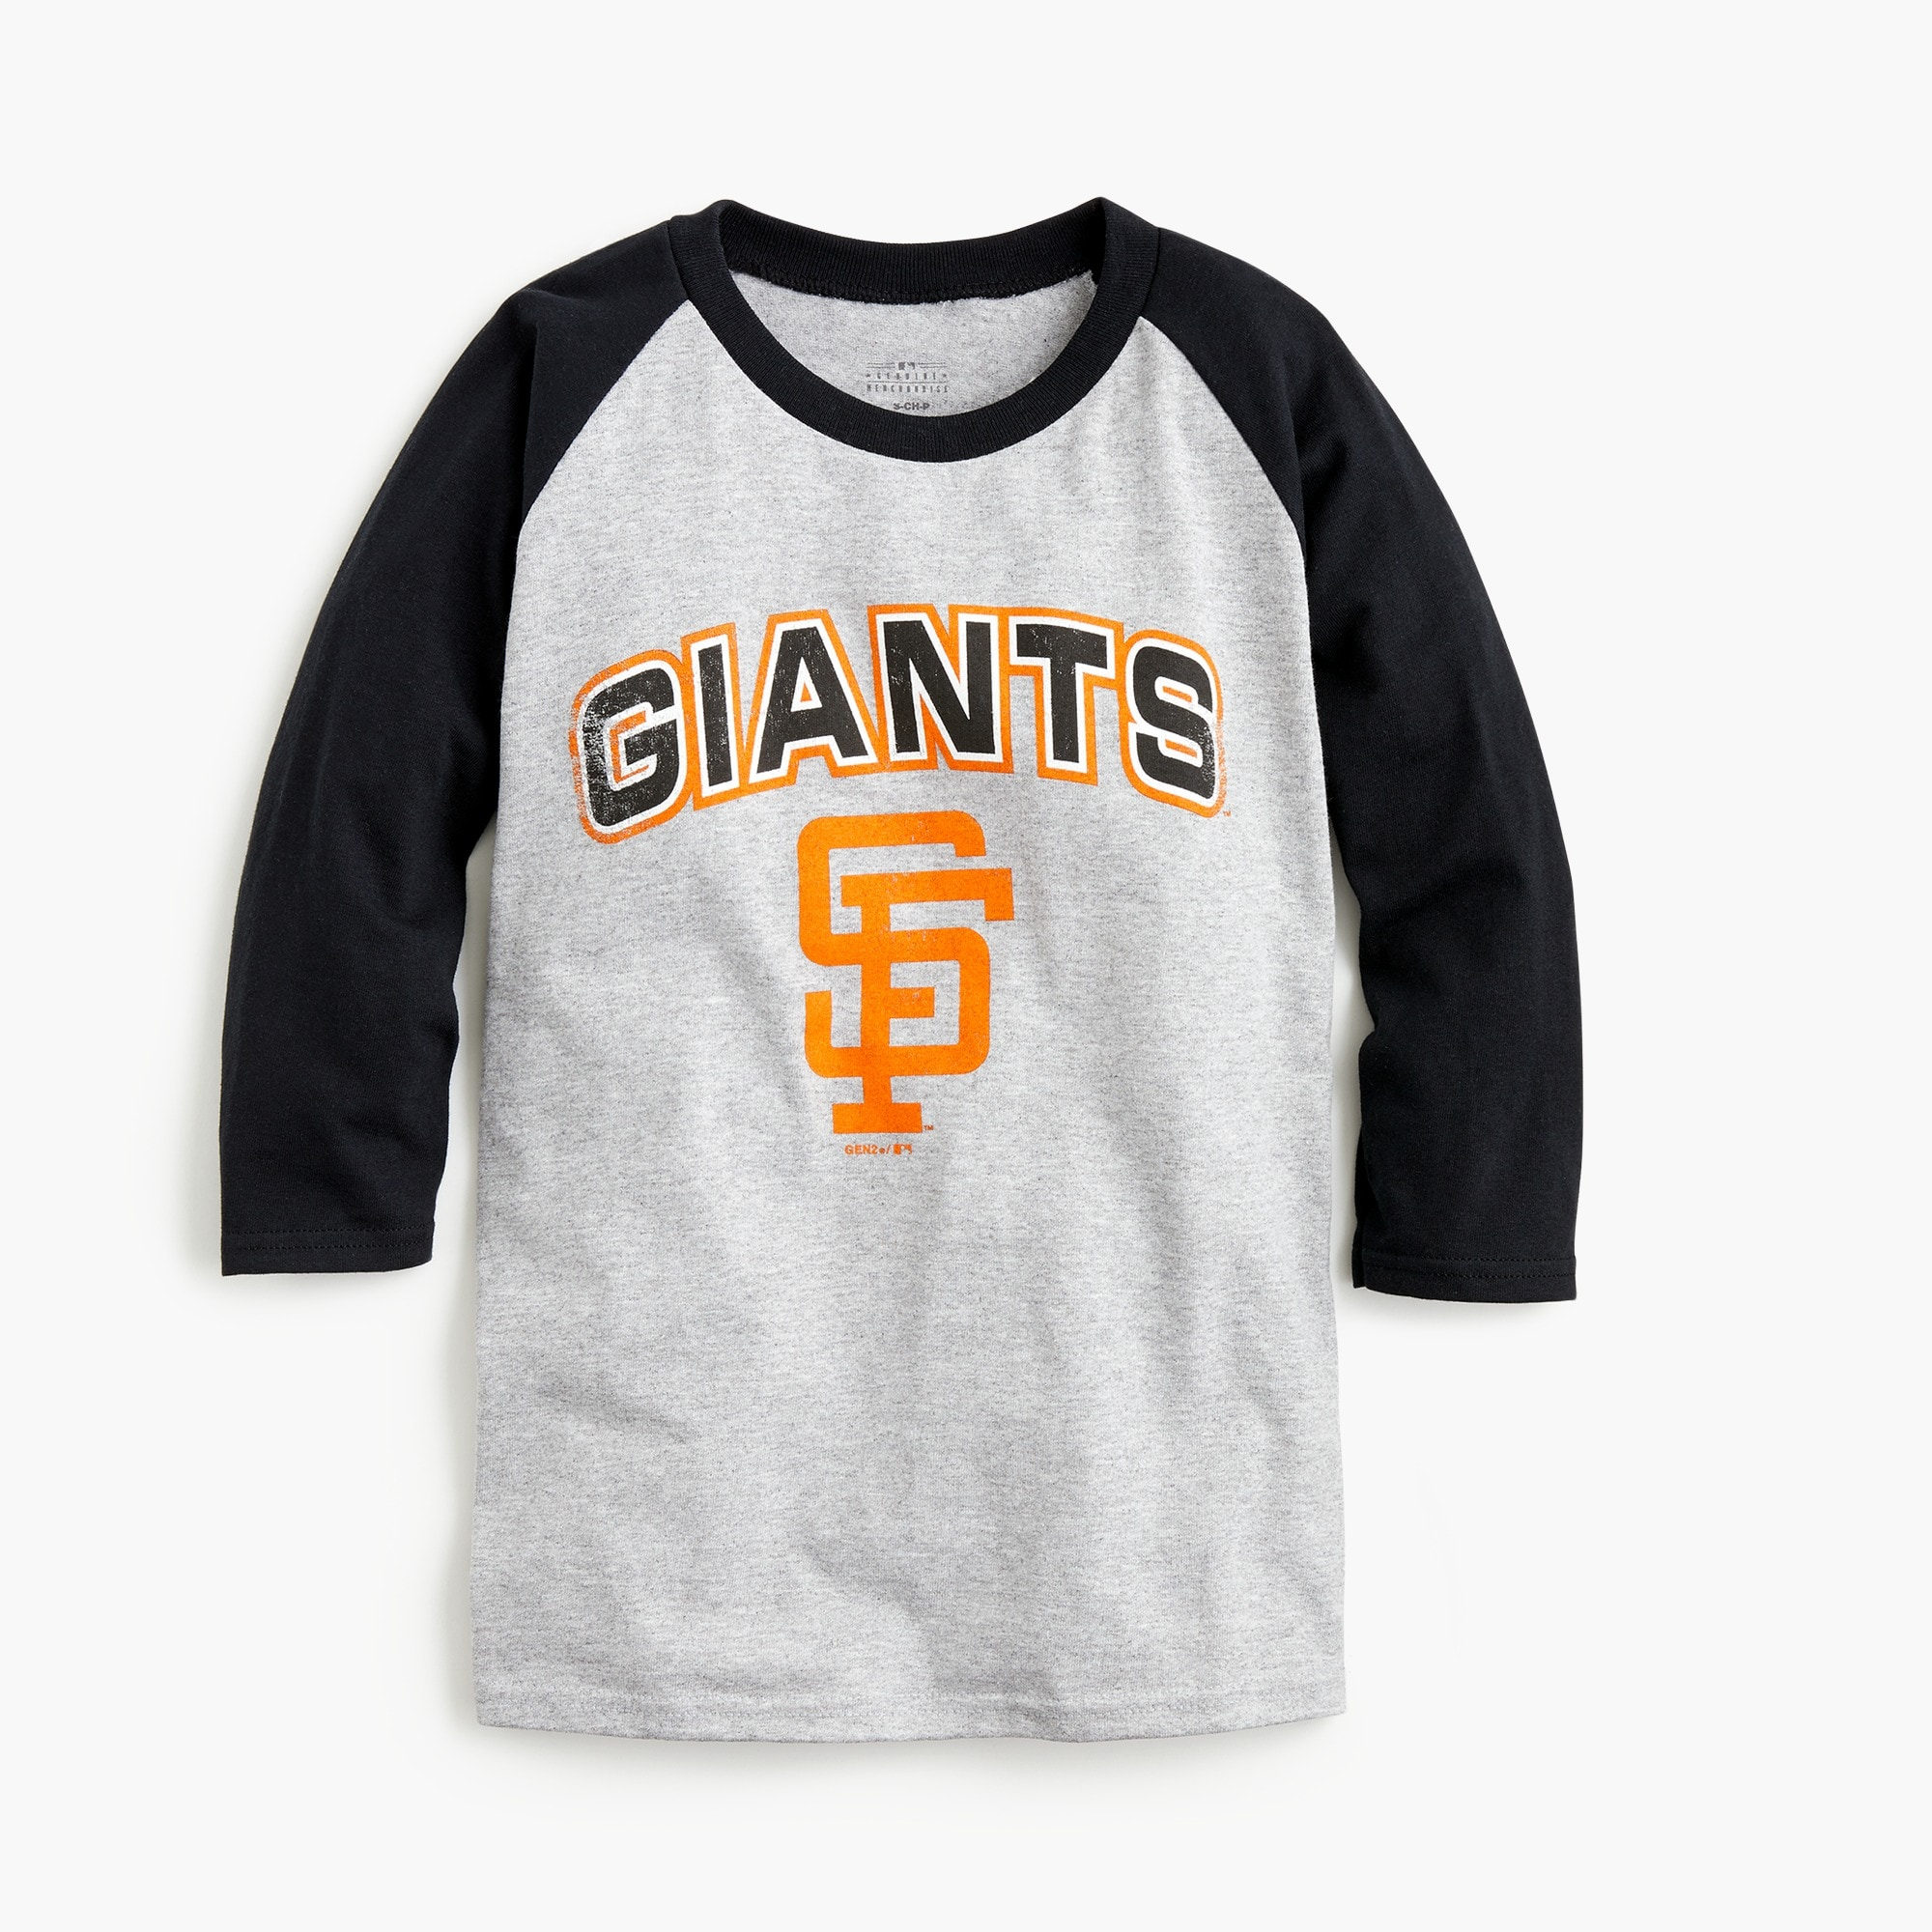 Kids' San Francisco Giants baseball T-shirt boy new arrivals c